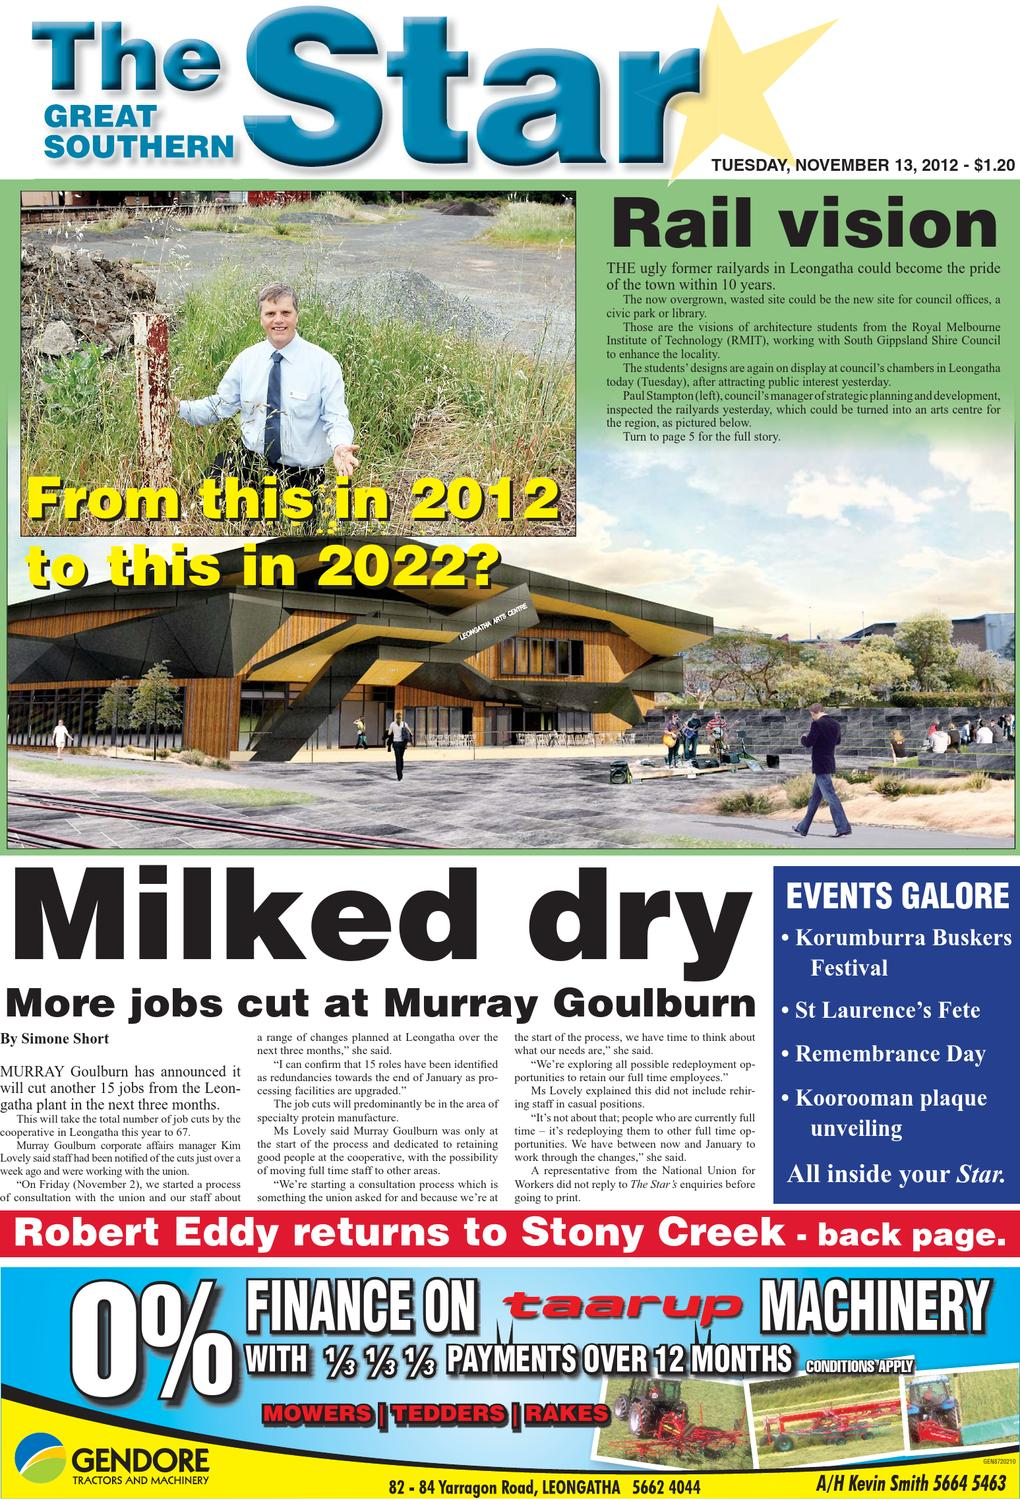 The Great Southern Star - November 13, 2012 by The Great Southern ...